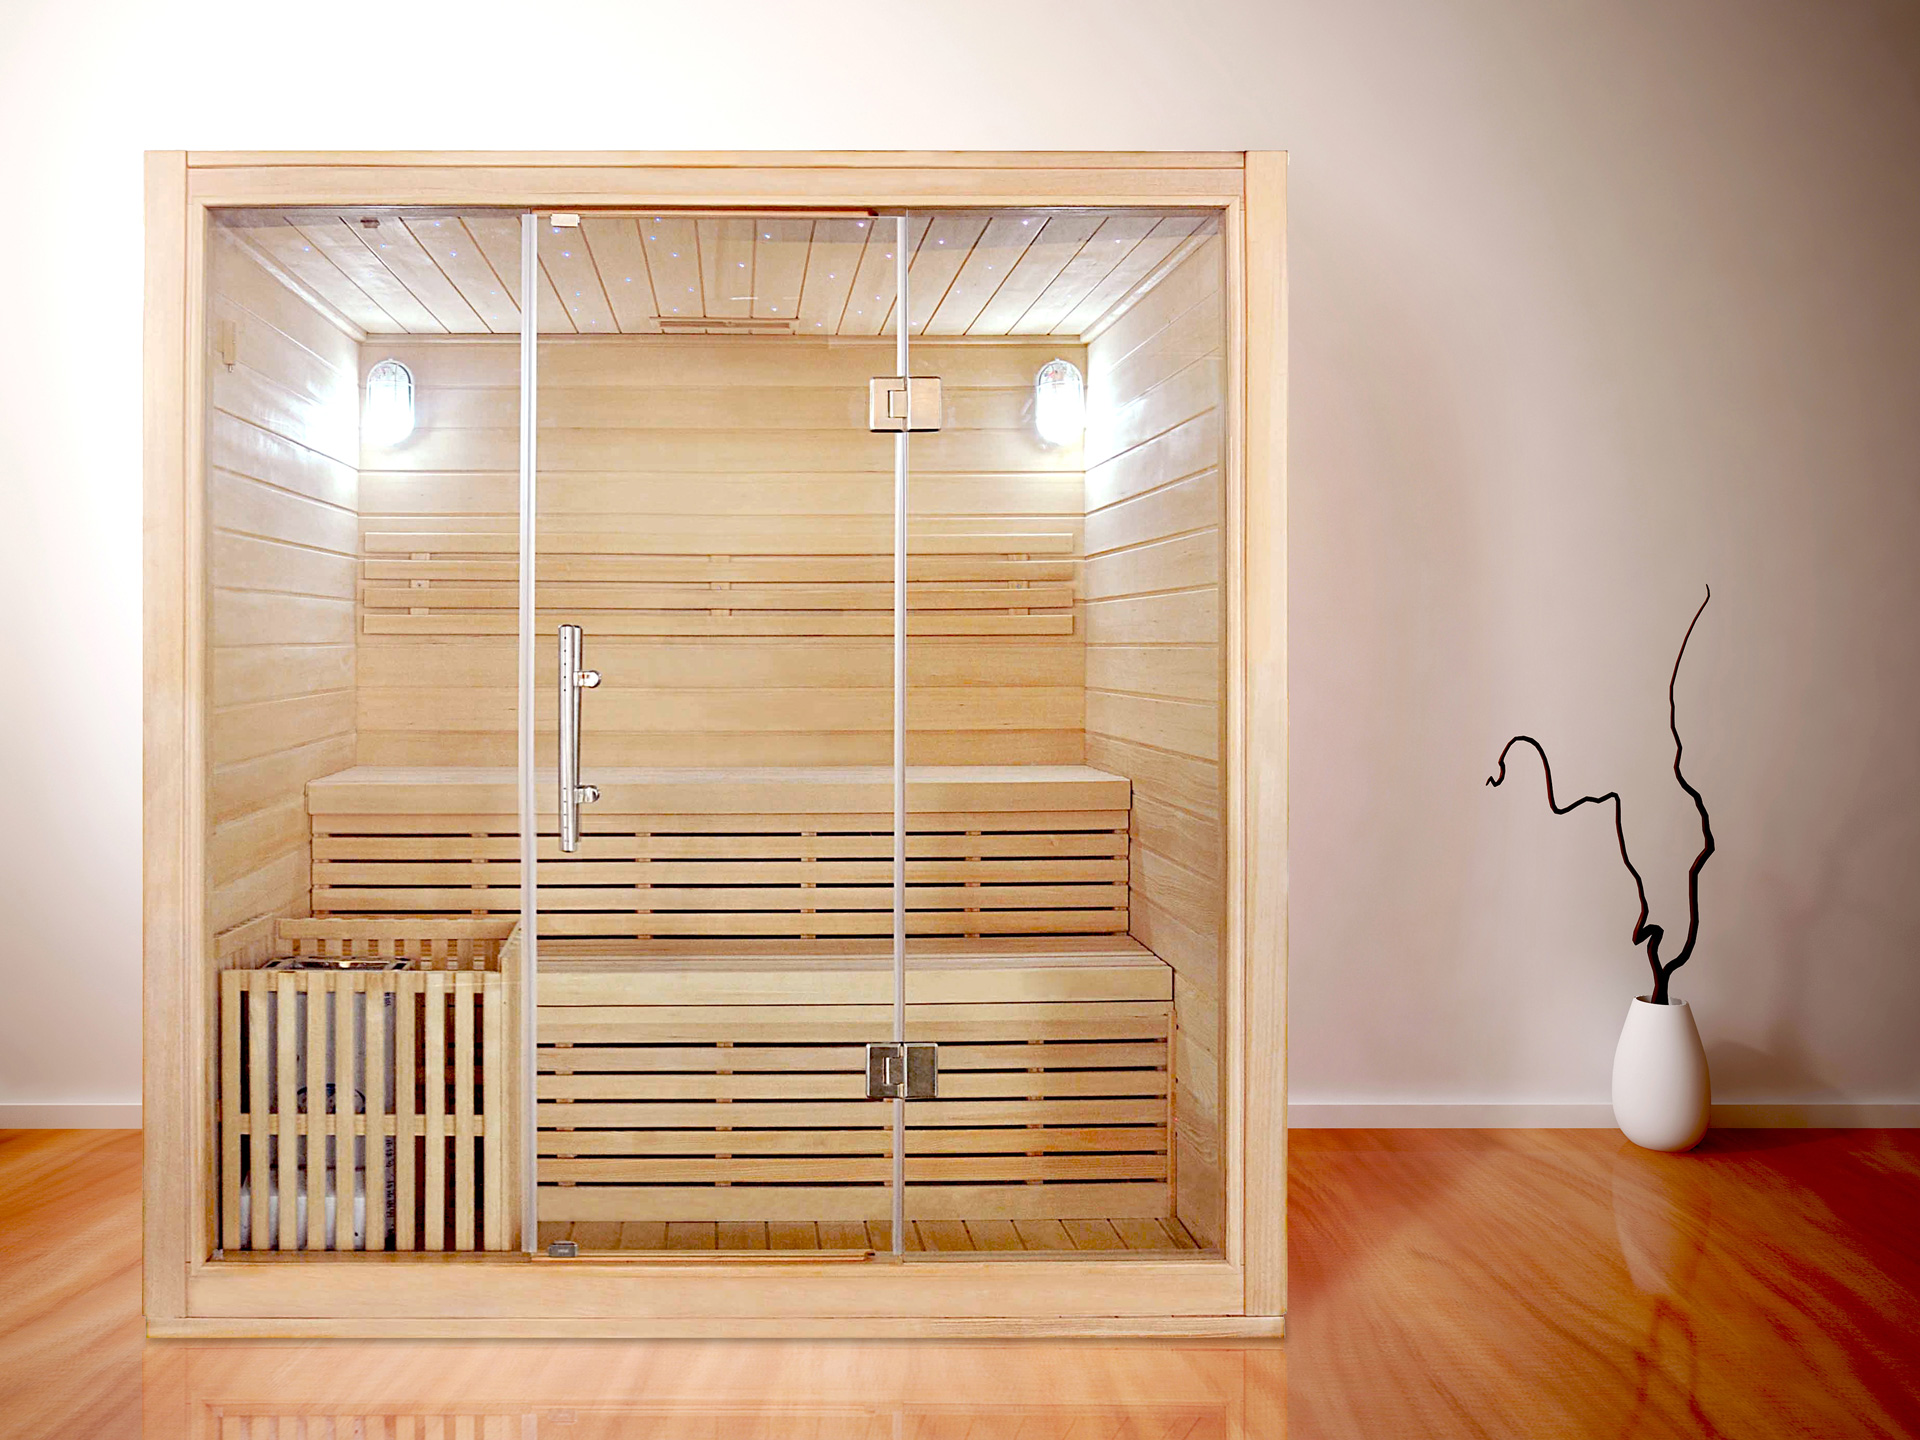 austria spa sauna w rmekabinen und saunen von h chster qualit t. Black Bedroom Furniture Sets. Home Design Ideas